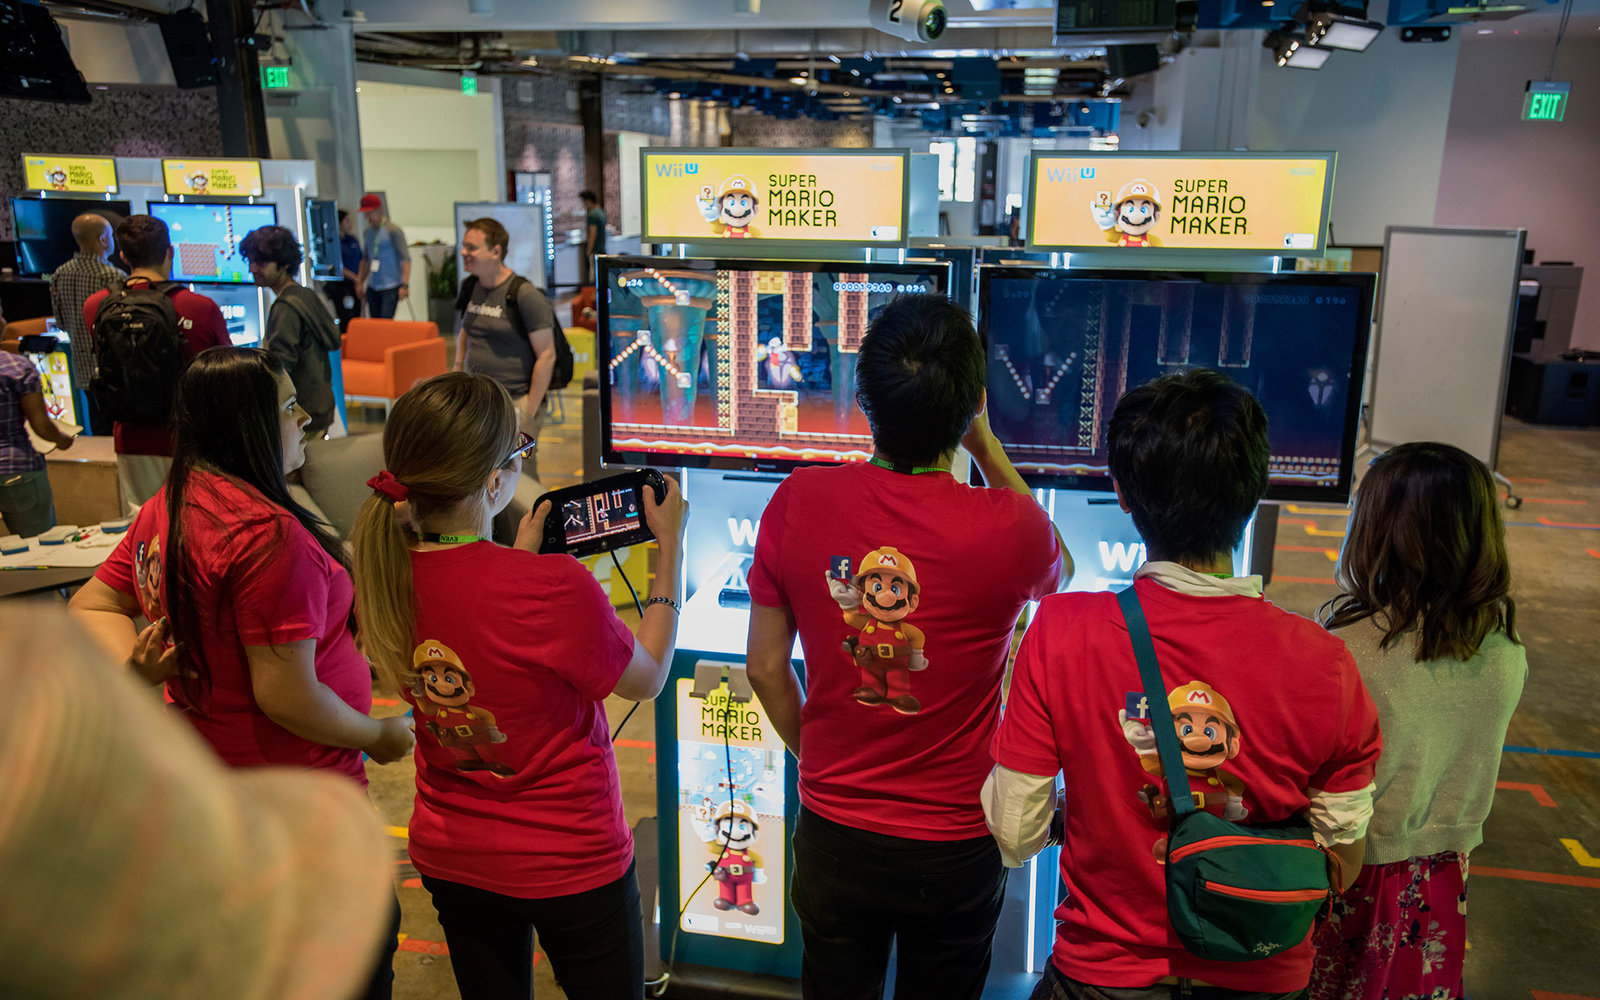 Nintendo Co. employees play the Super Mario Maker video game during a hackathon at the Facebook Inc. headquarters in Menlo Park, California, U.S., on Wednesday, July 29, 2015. Nintendo Co. jumped the most in four months after returning to quarterly profit